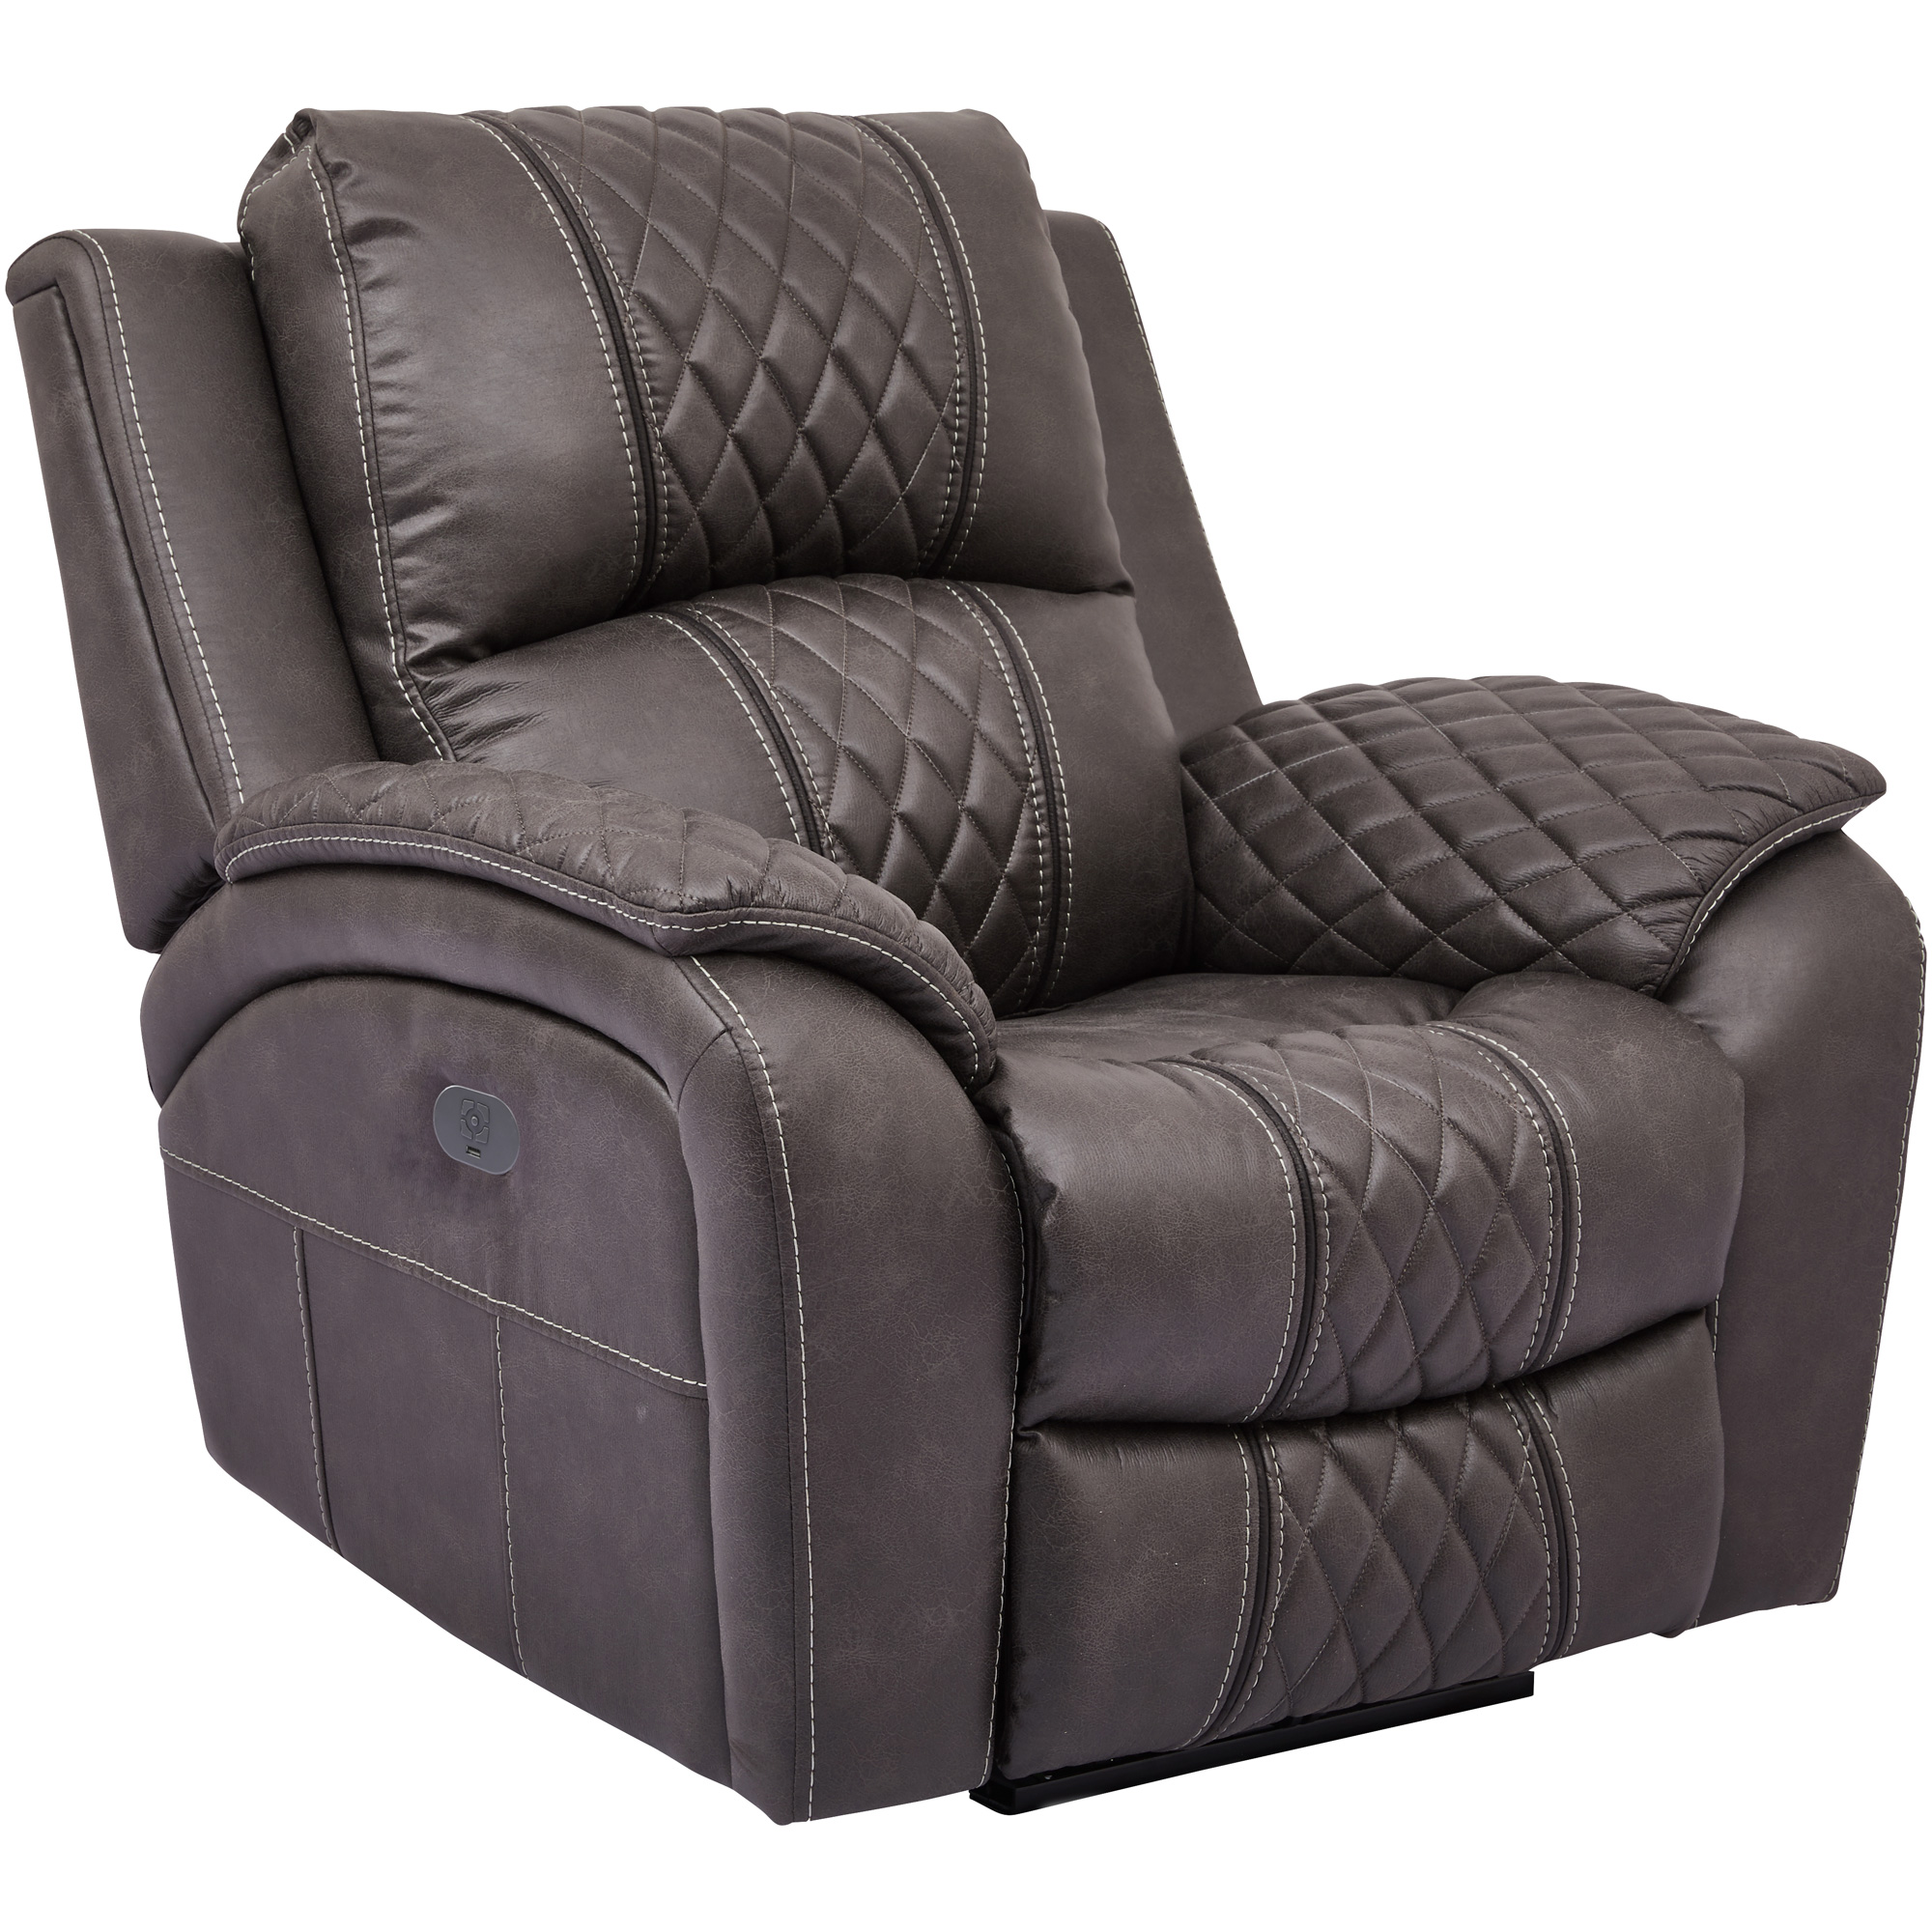 Wah Cheers | Starling Graphite Power Plus Recliner Chair